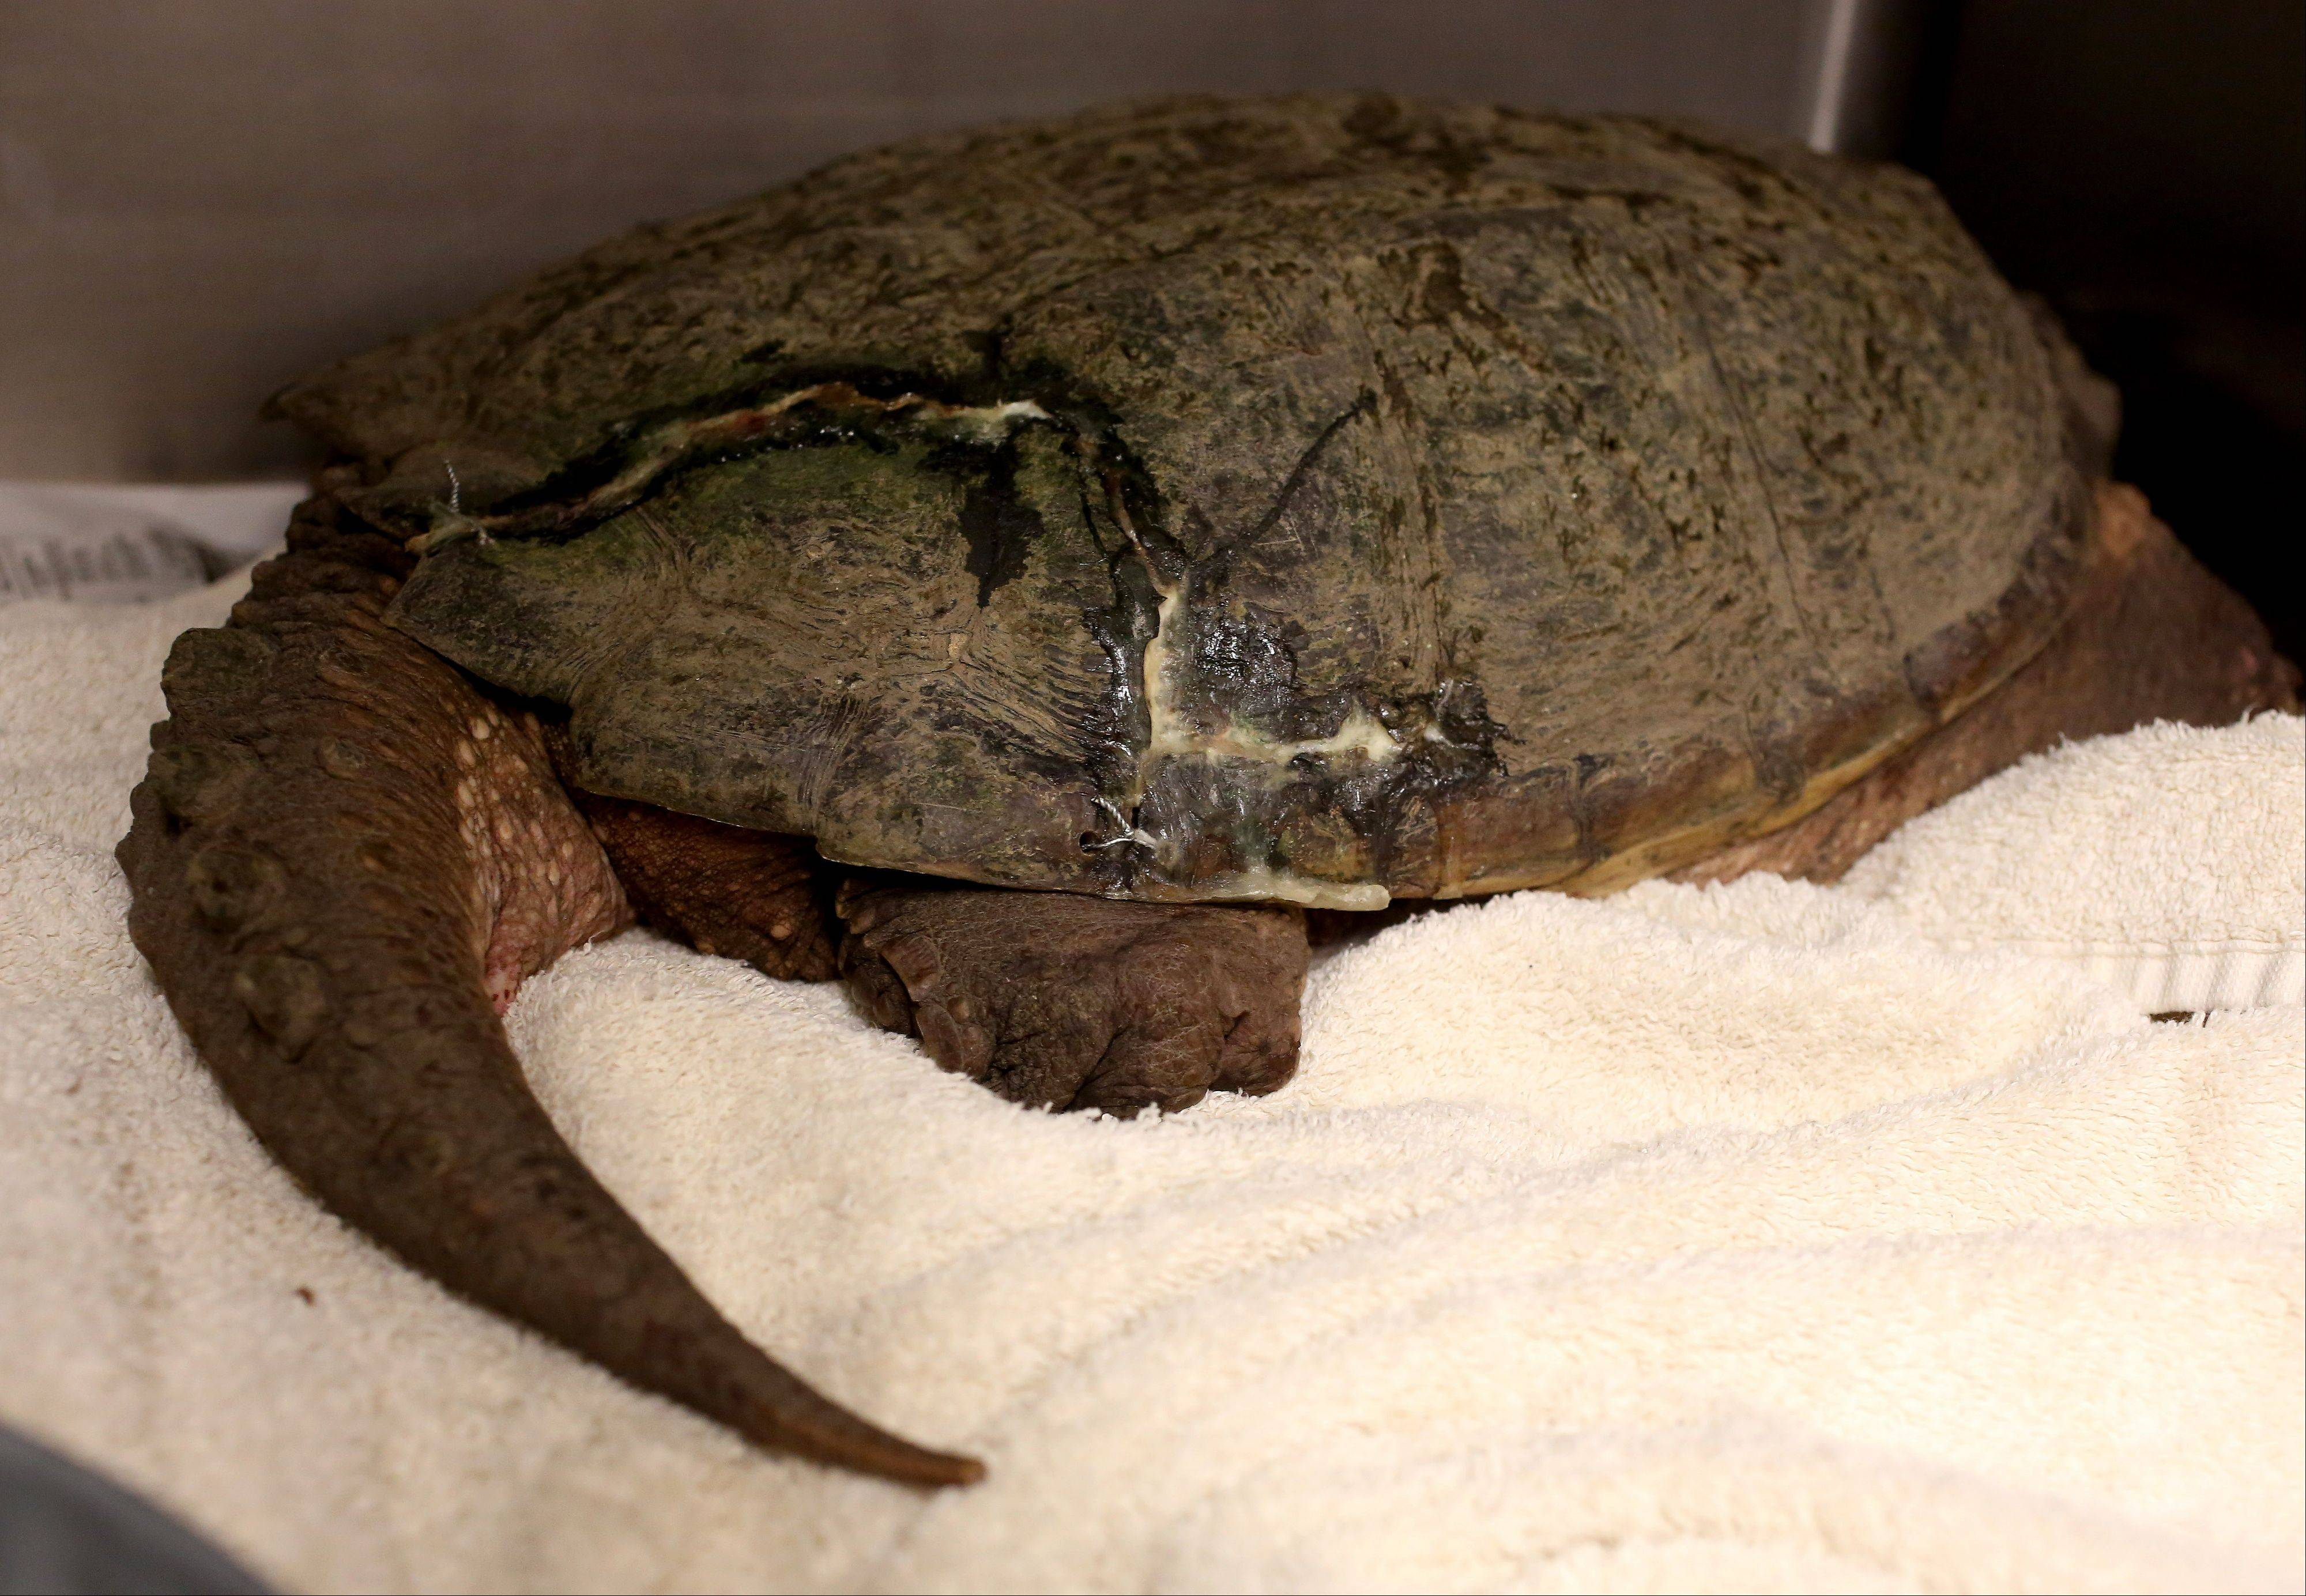 A common snapping turtle that was hit by a car is almost healed and soon will be ready to be rereleased back into the wild.